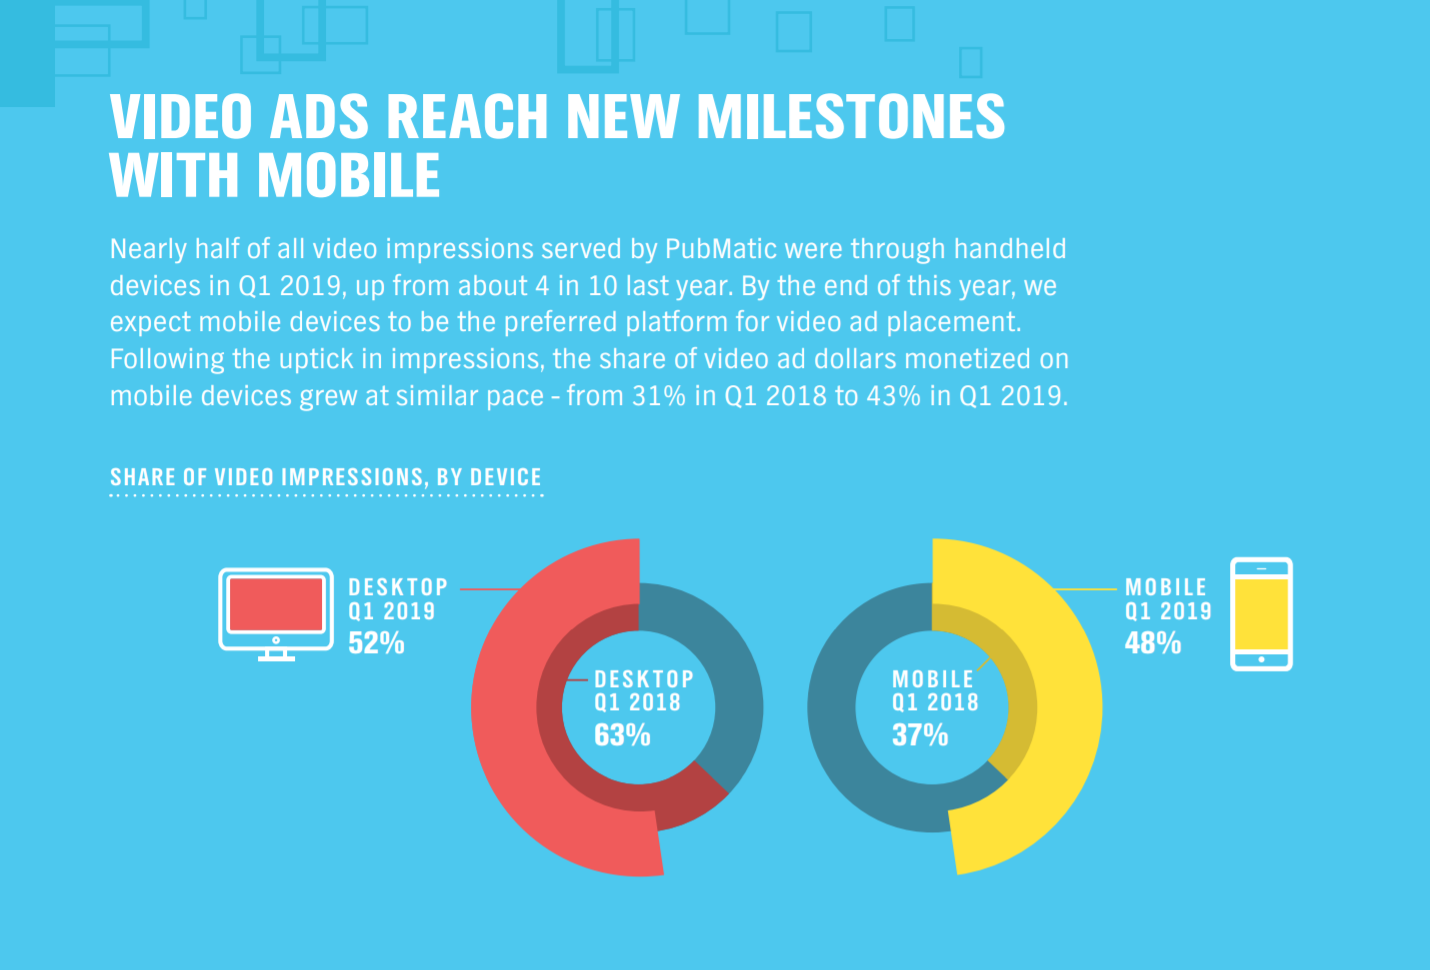 Study: Mobile to become the preferred platform for video ads by the end of this year